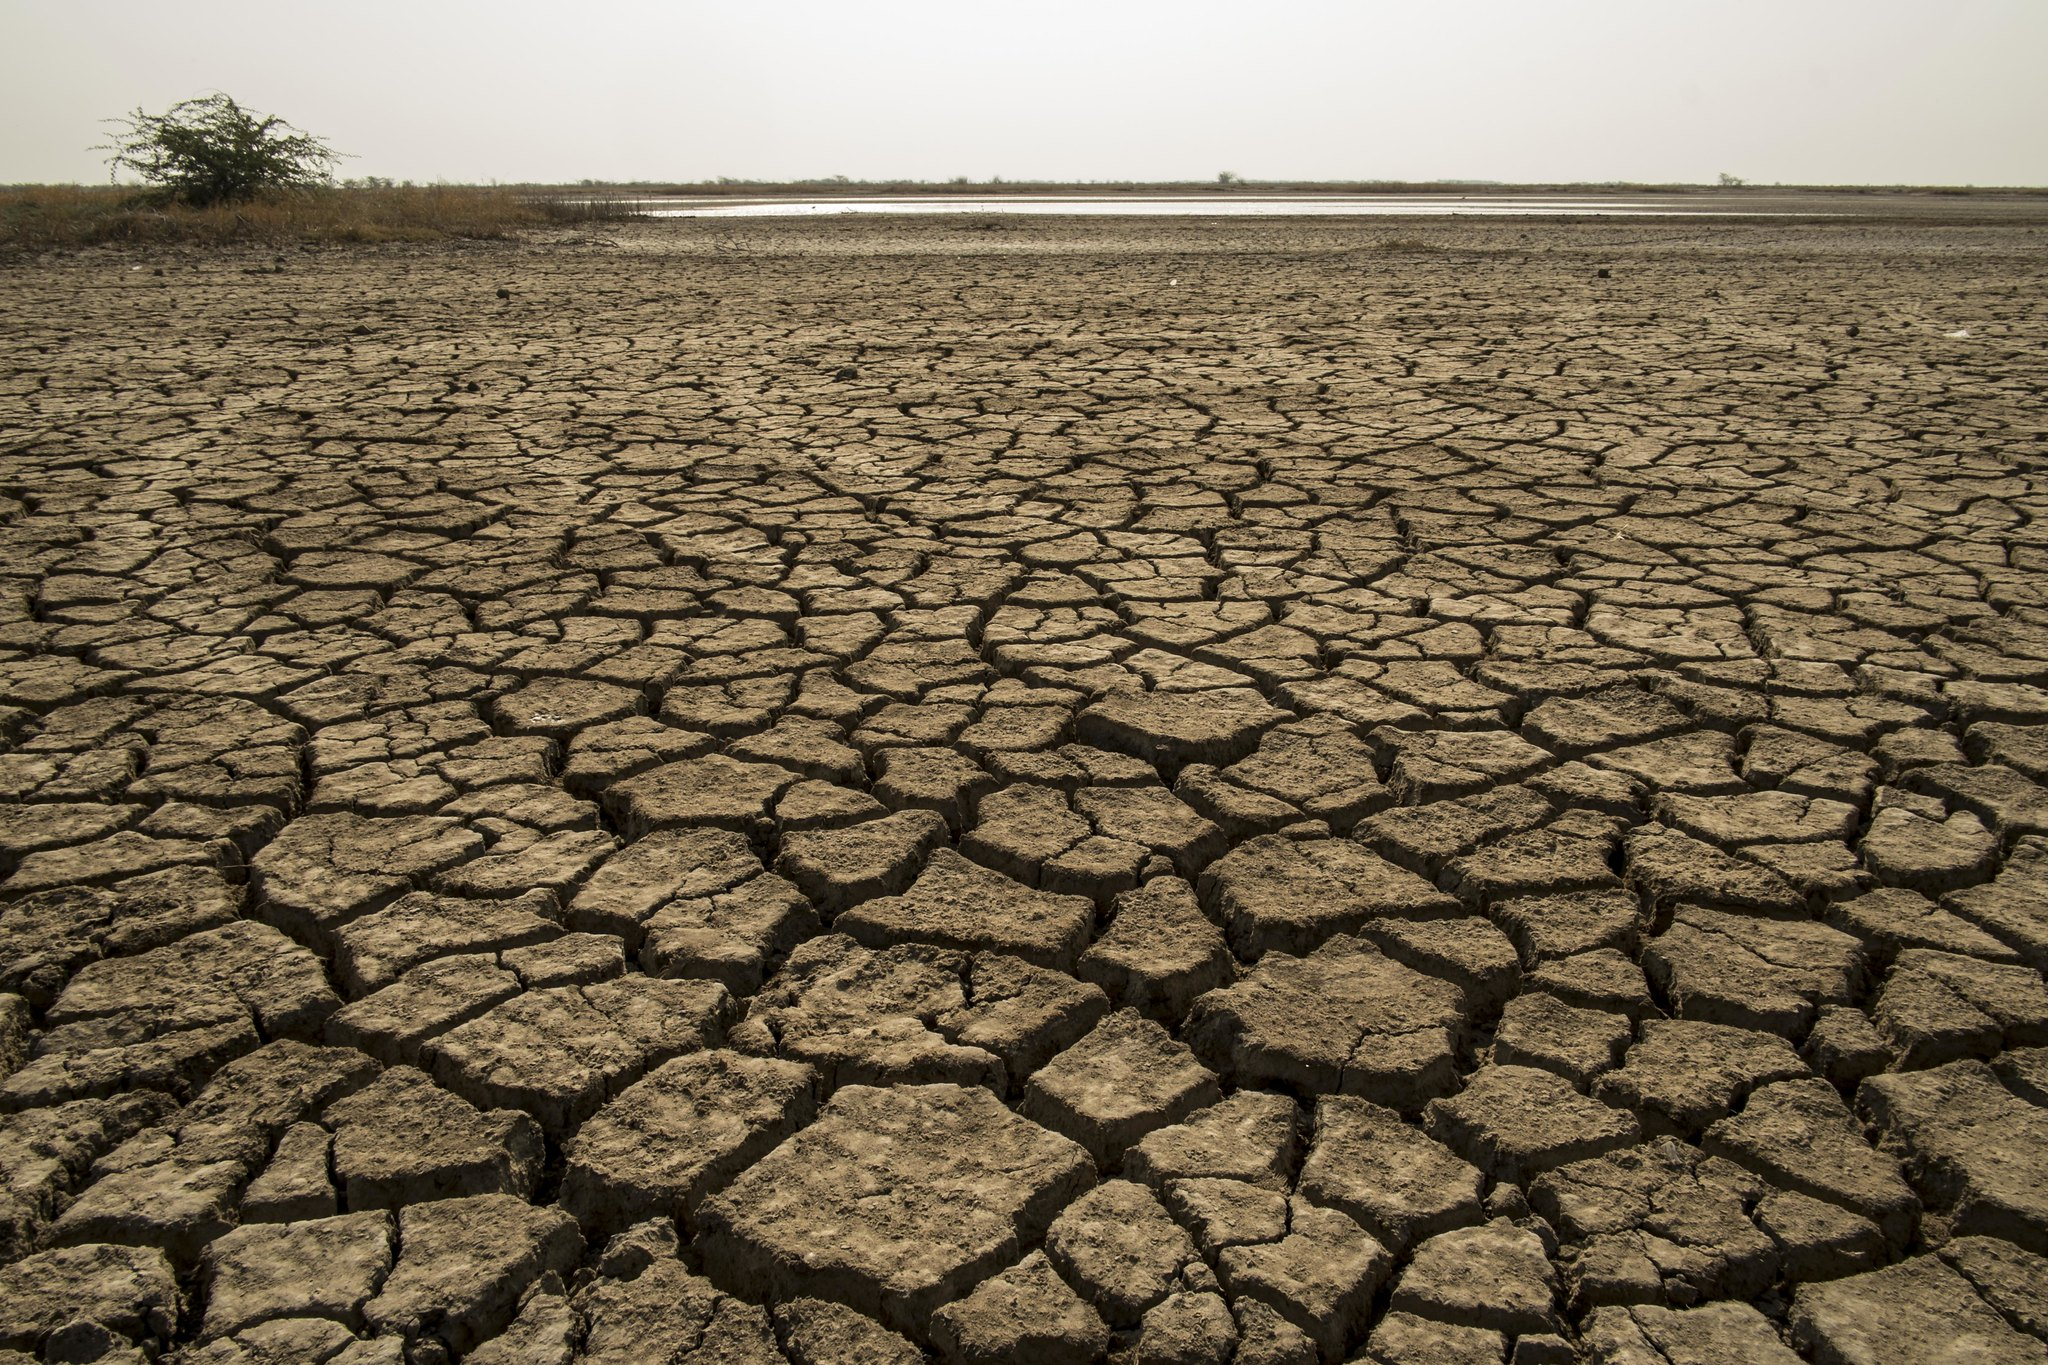 Climate Change: global aridity